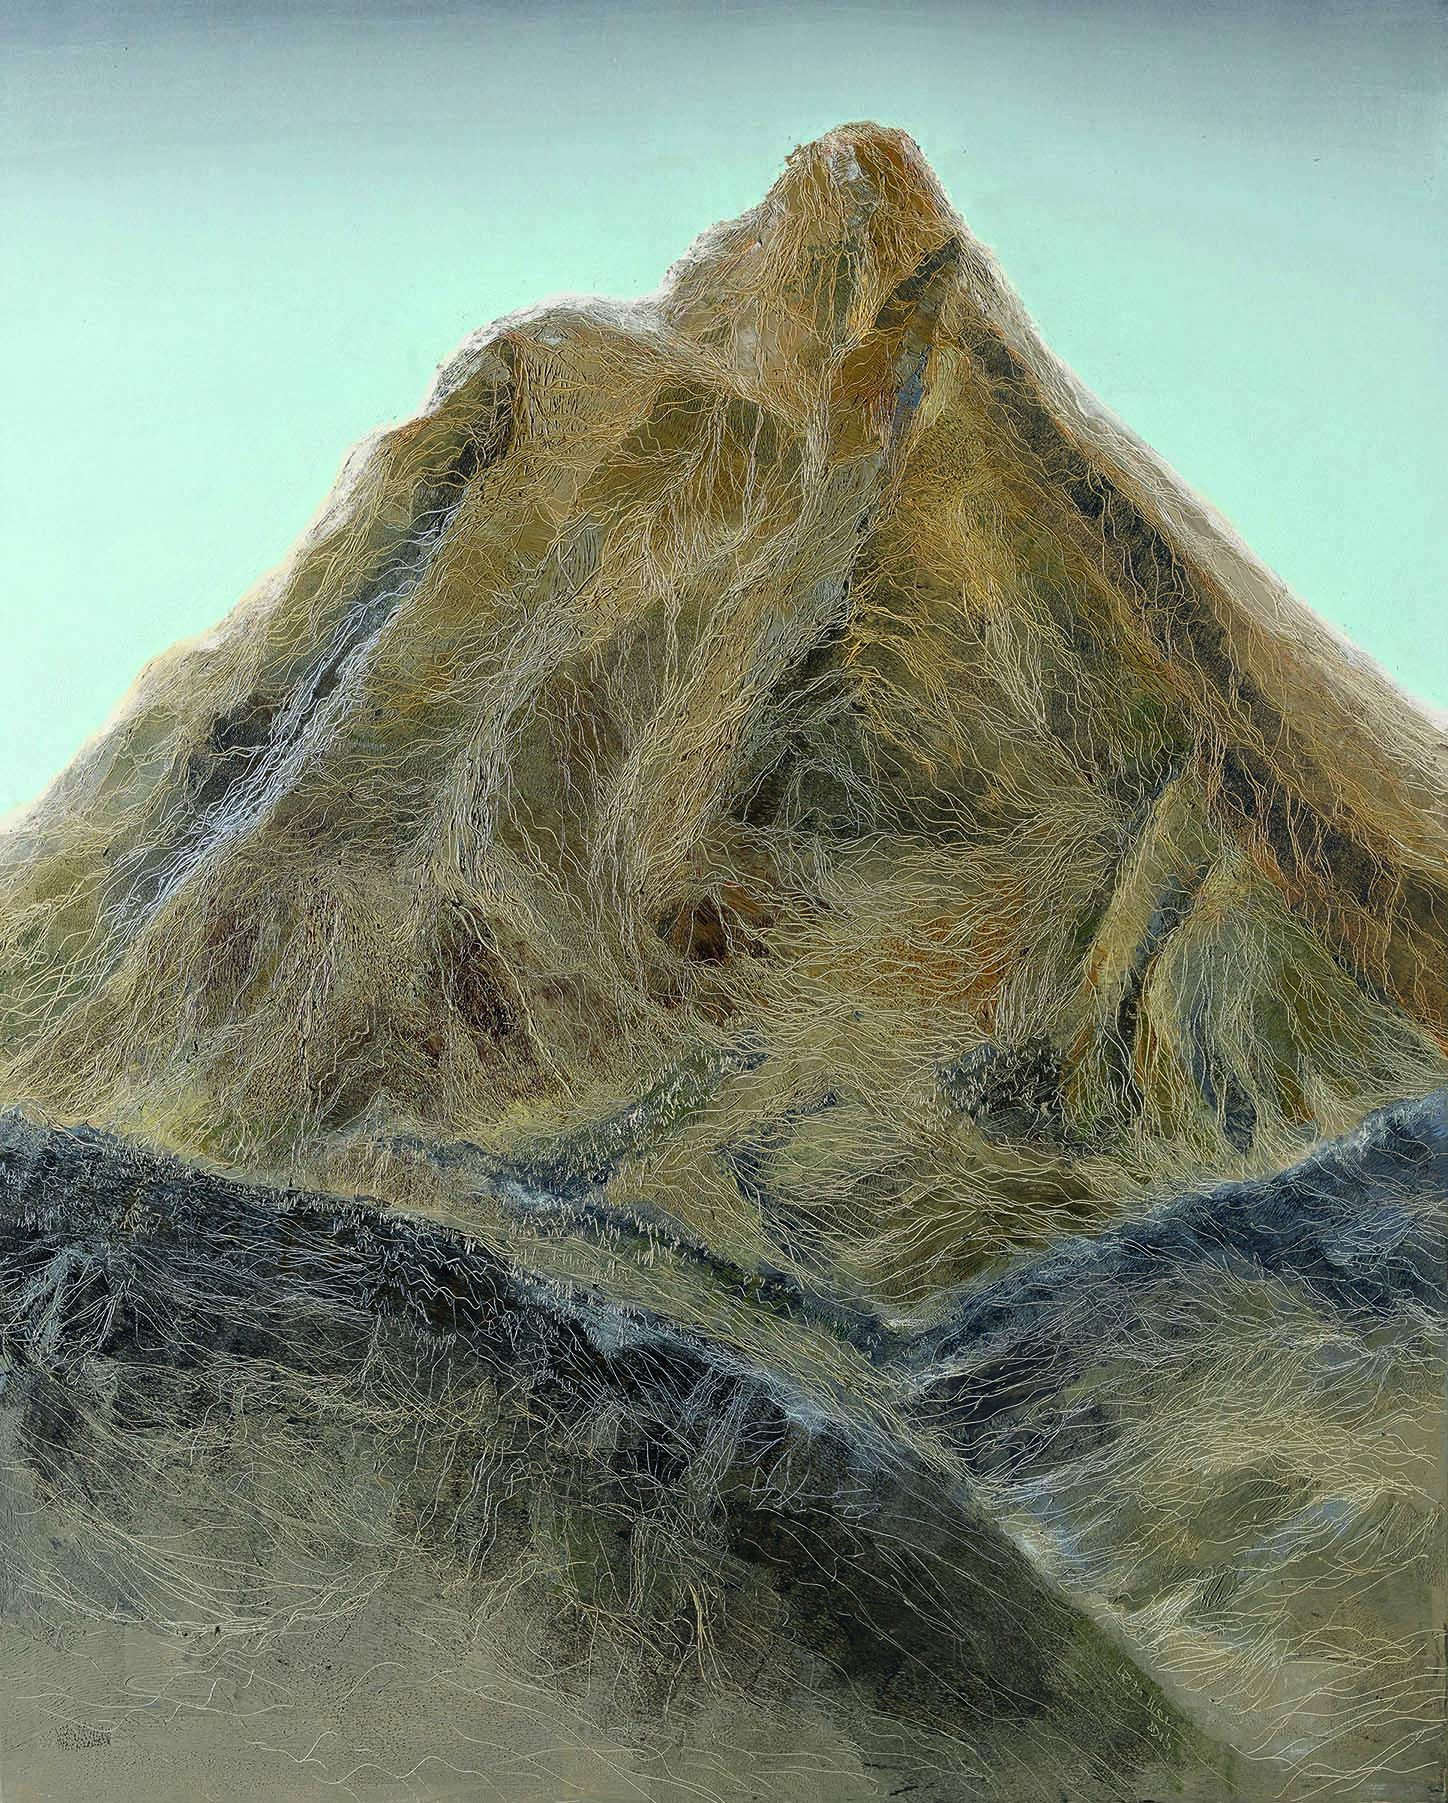 擎天, Cold Peaks 3, 162 x 130 cm, oil on canvas, 2015